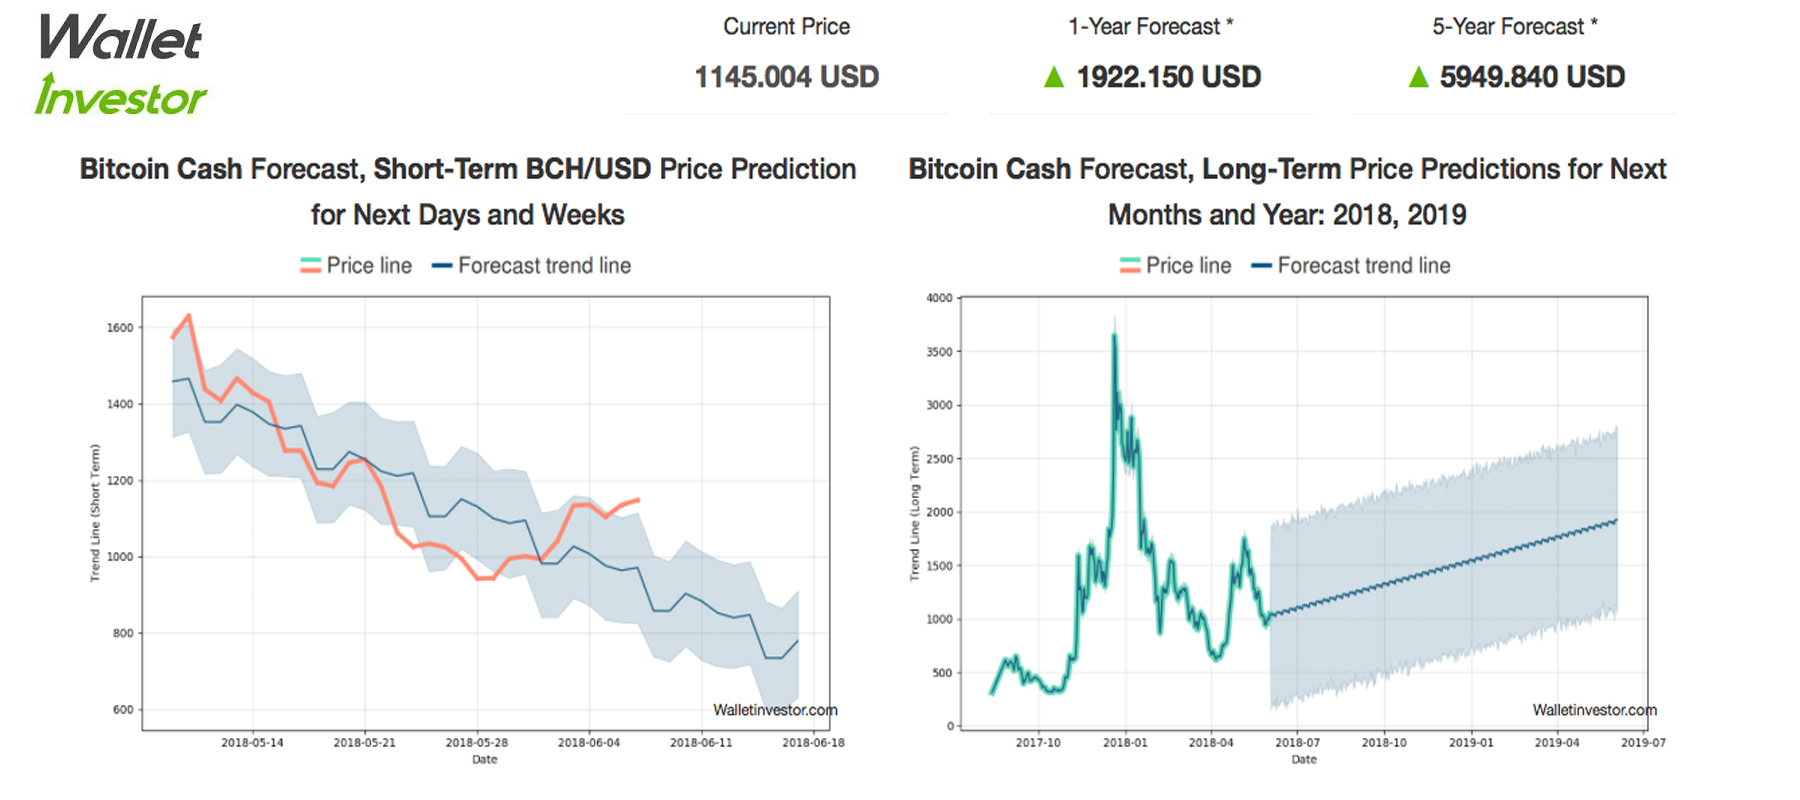 Data Prediction Sites Show More Conservative Cryptocurrency Price Forecasts